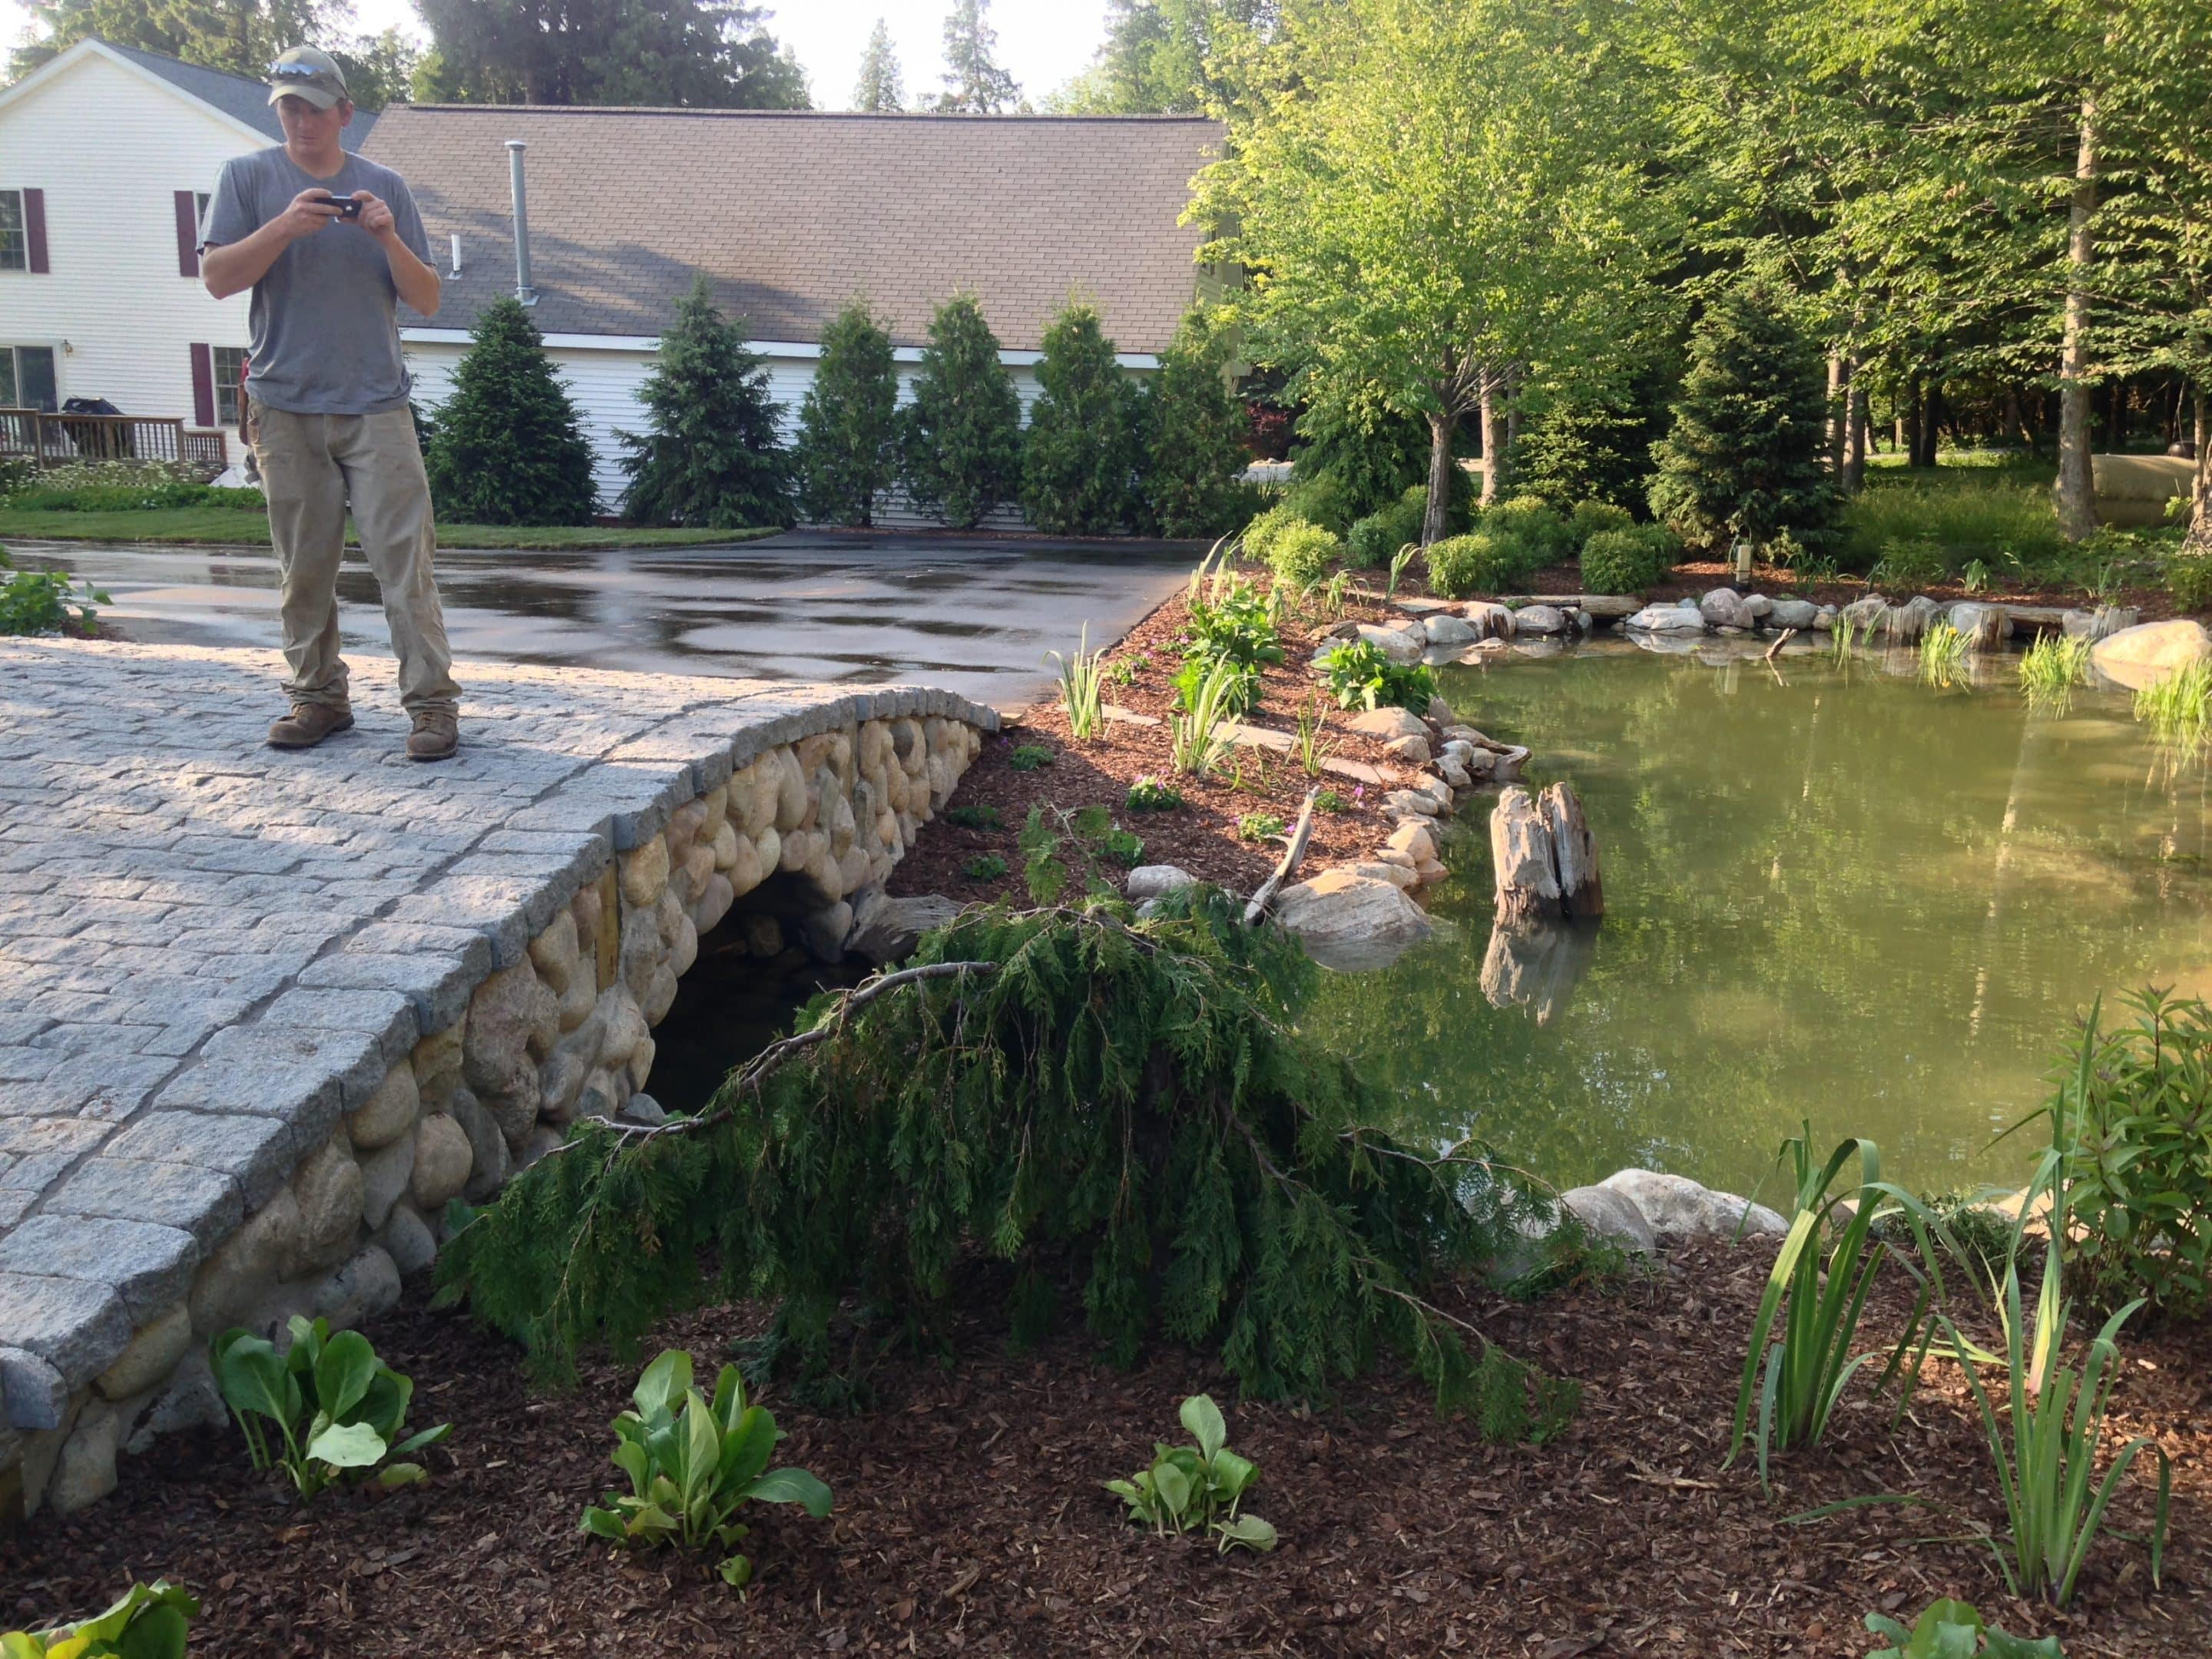 water feature installation completed including a driveway bridge